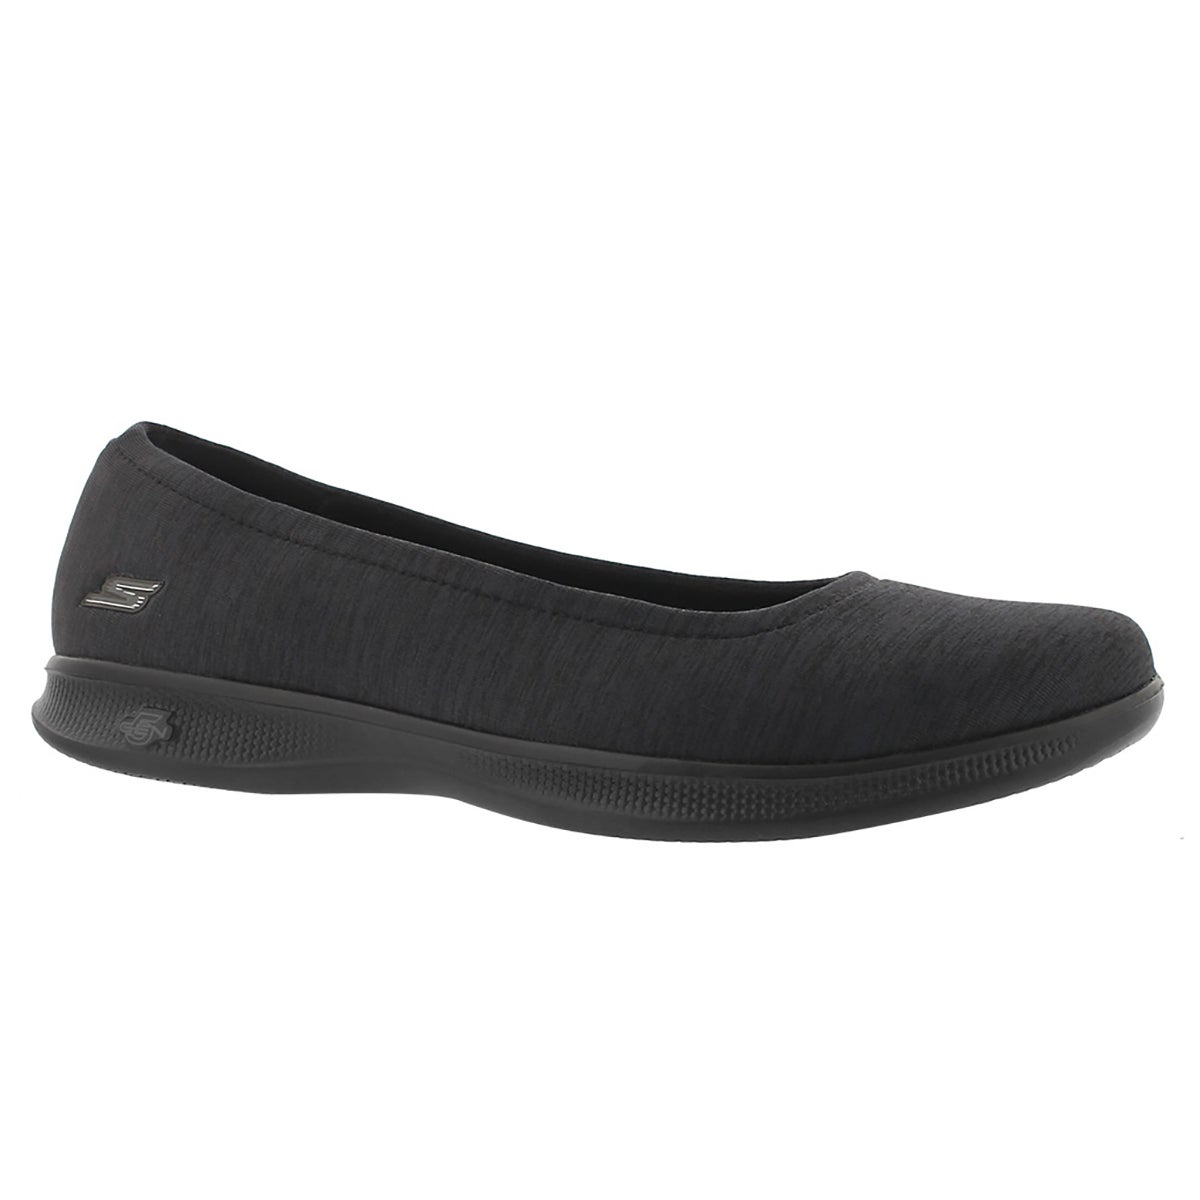 Women's GOstep LITE black space dye casual flats